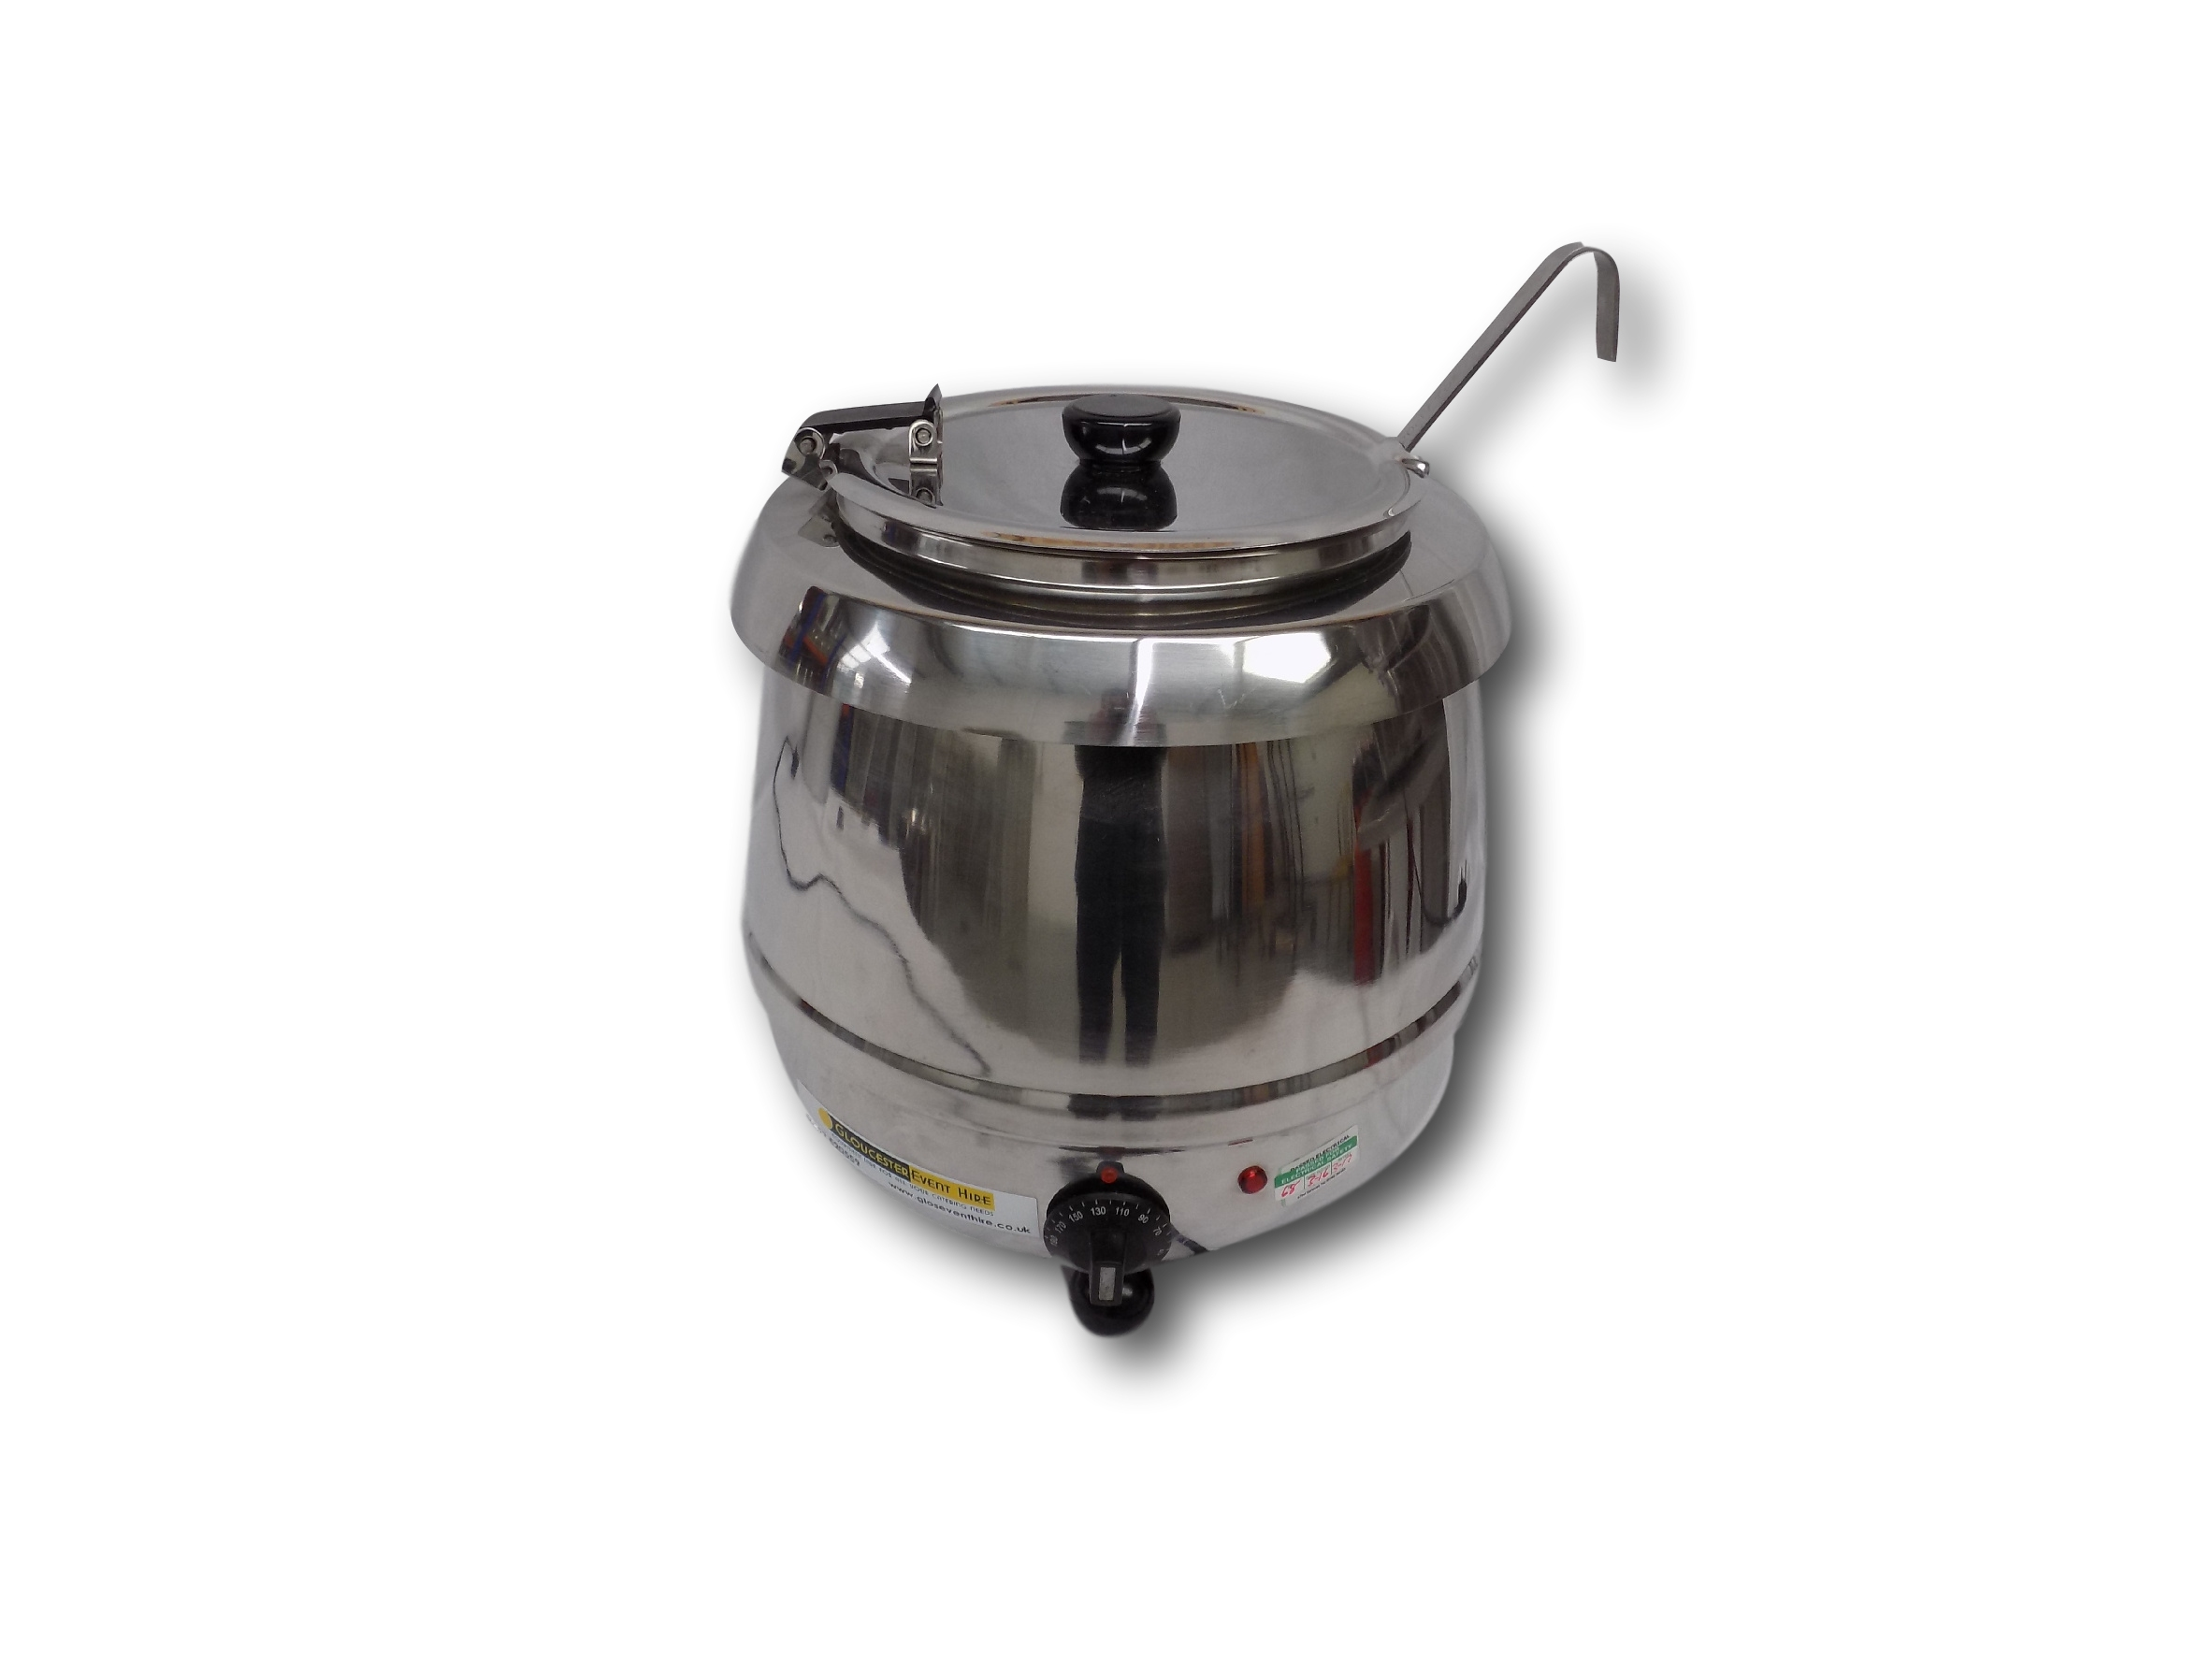 Soup kettles Carvery & servery | UK